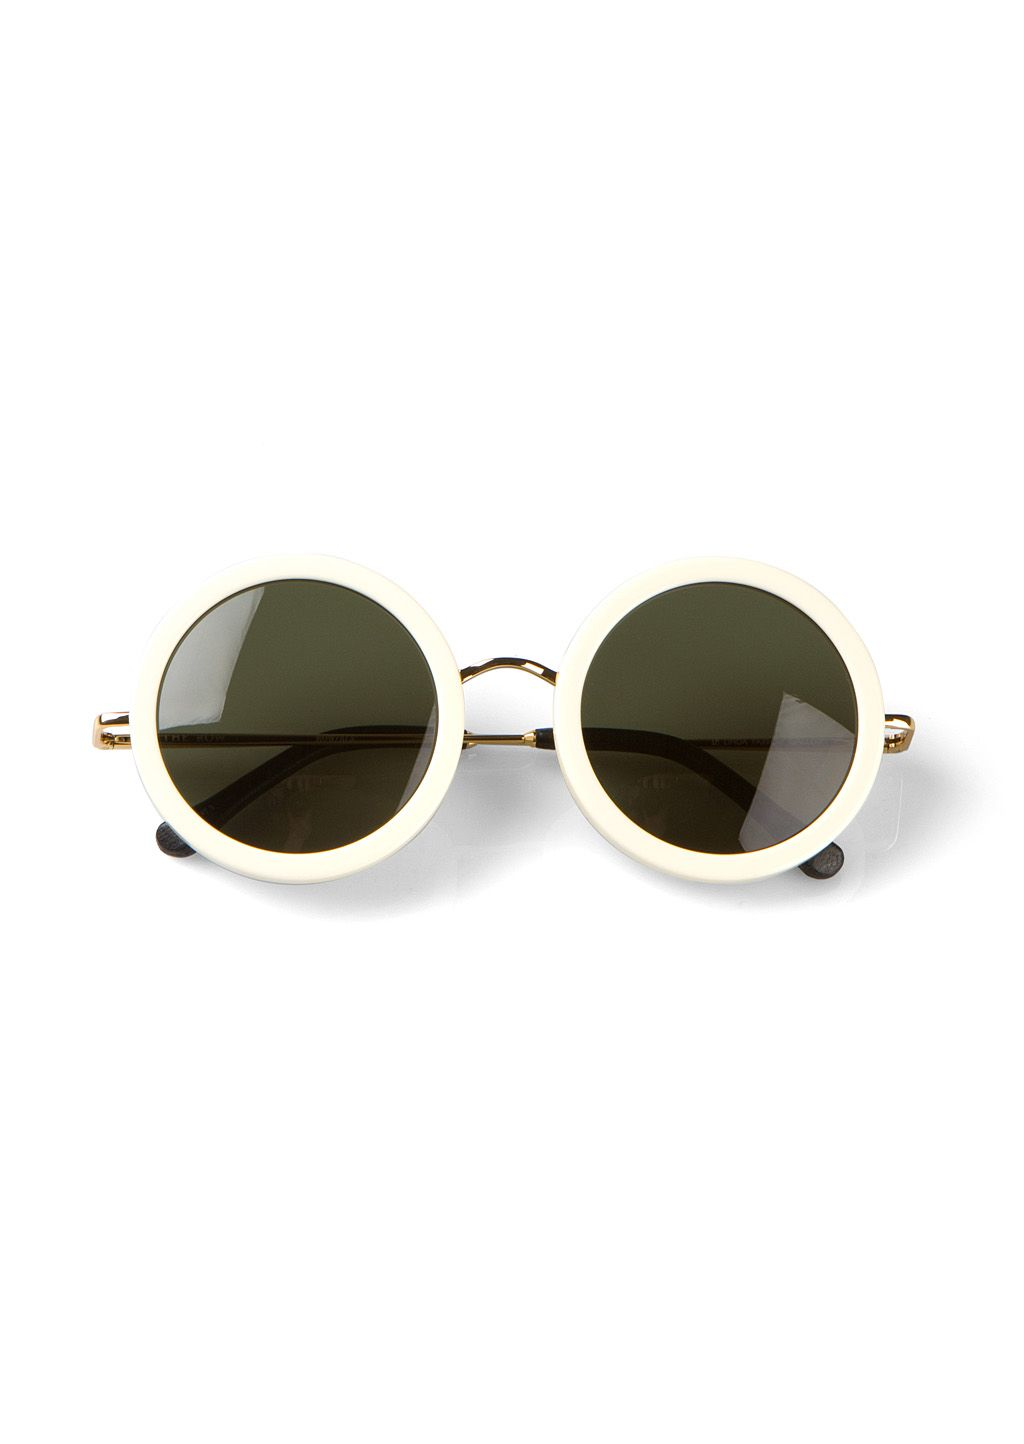 the row white round sunglasses vnd liked on polyvore featuring accessories eyewear sunglasses glasses round frame sunglasses white sunglasses